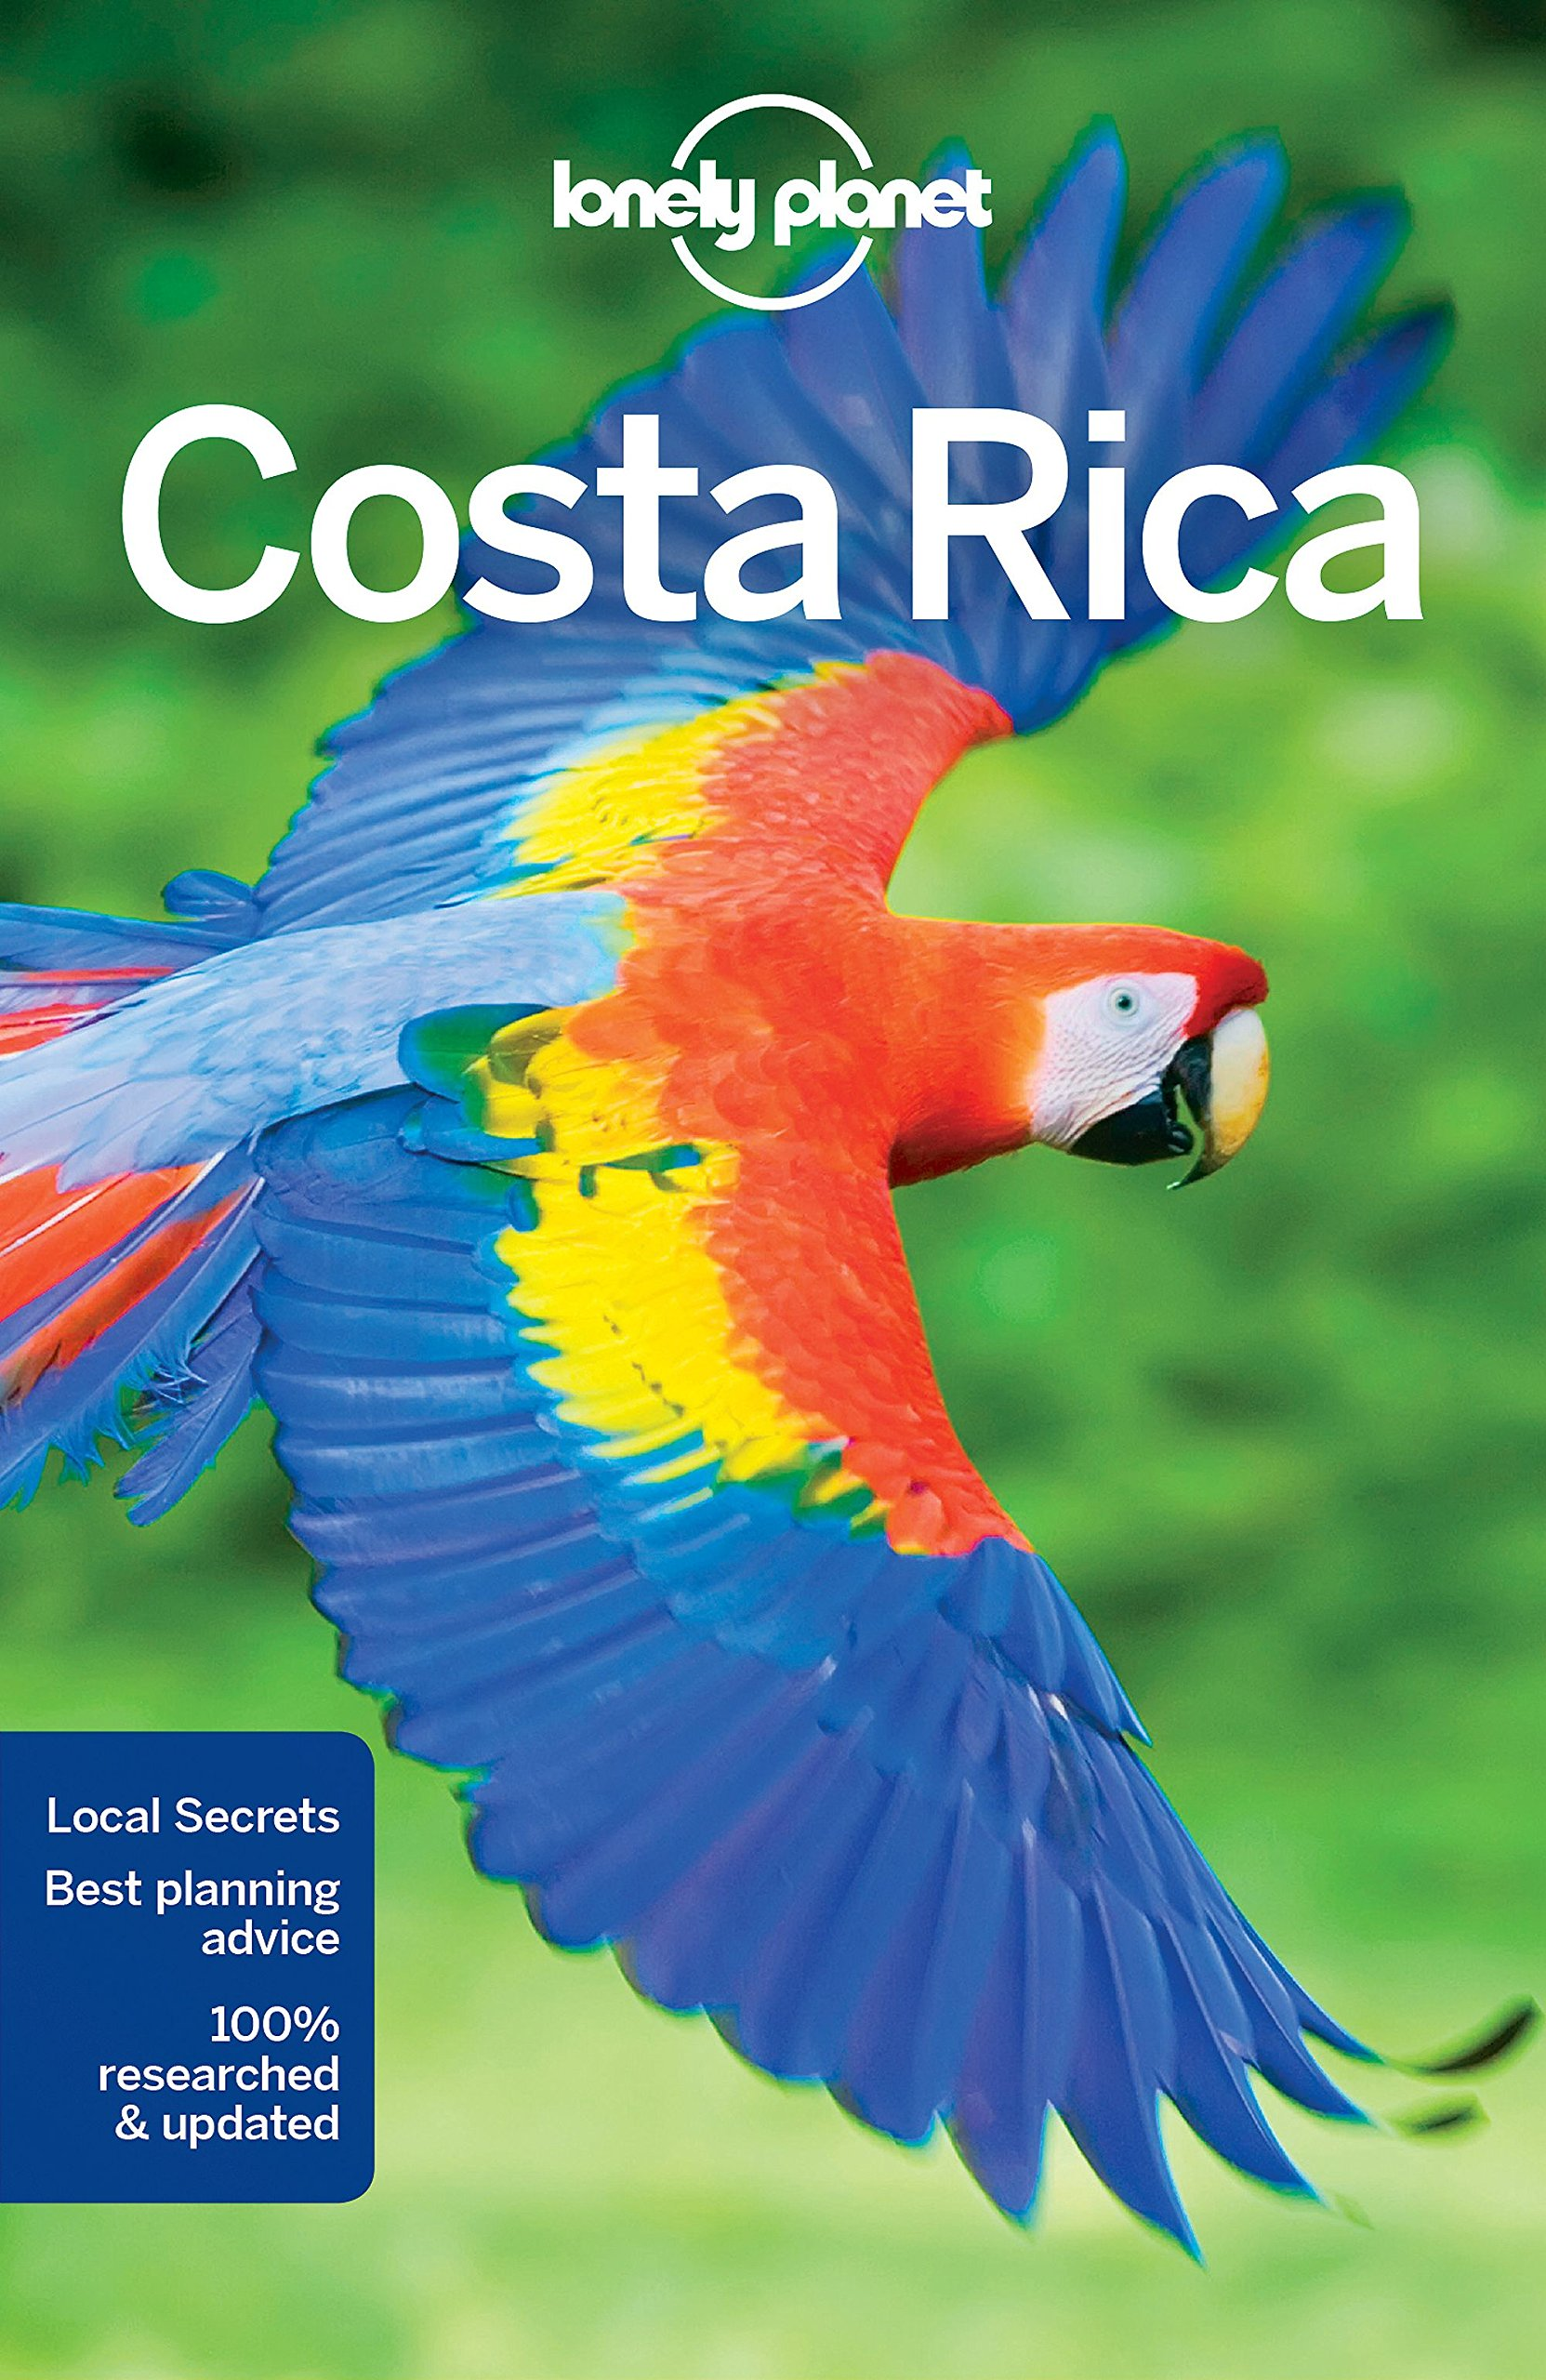 Lonely Planet Costa Rica 12.